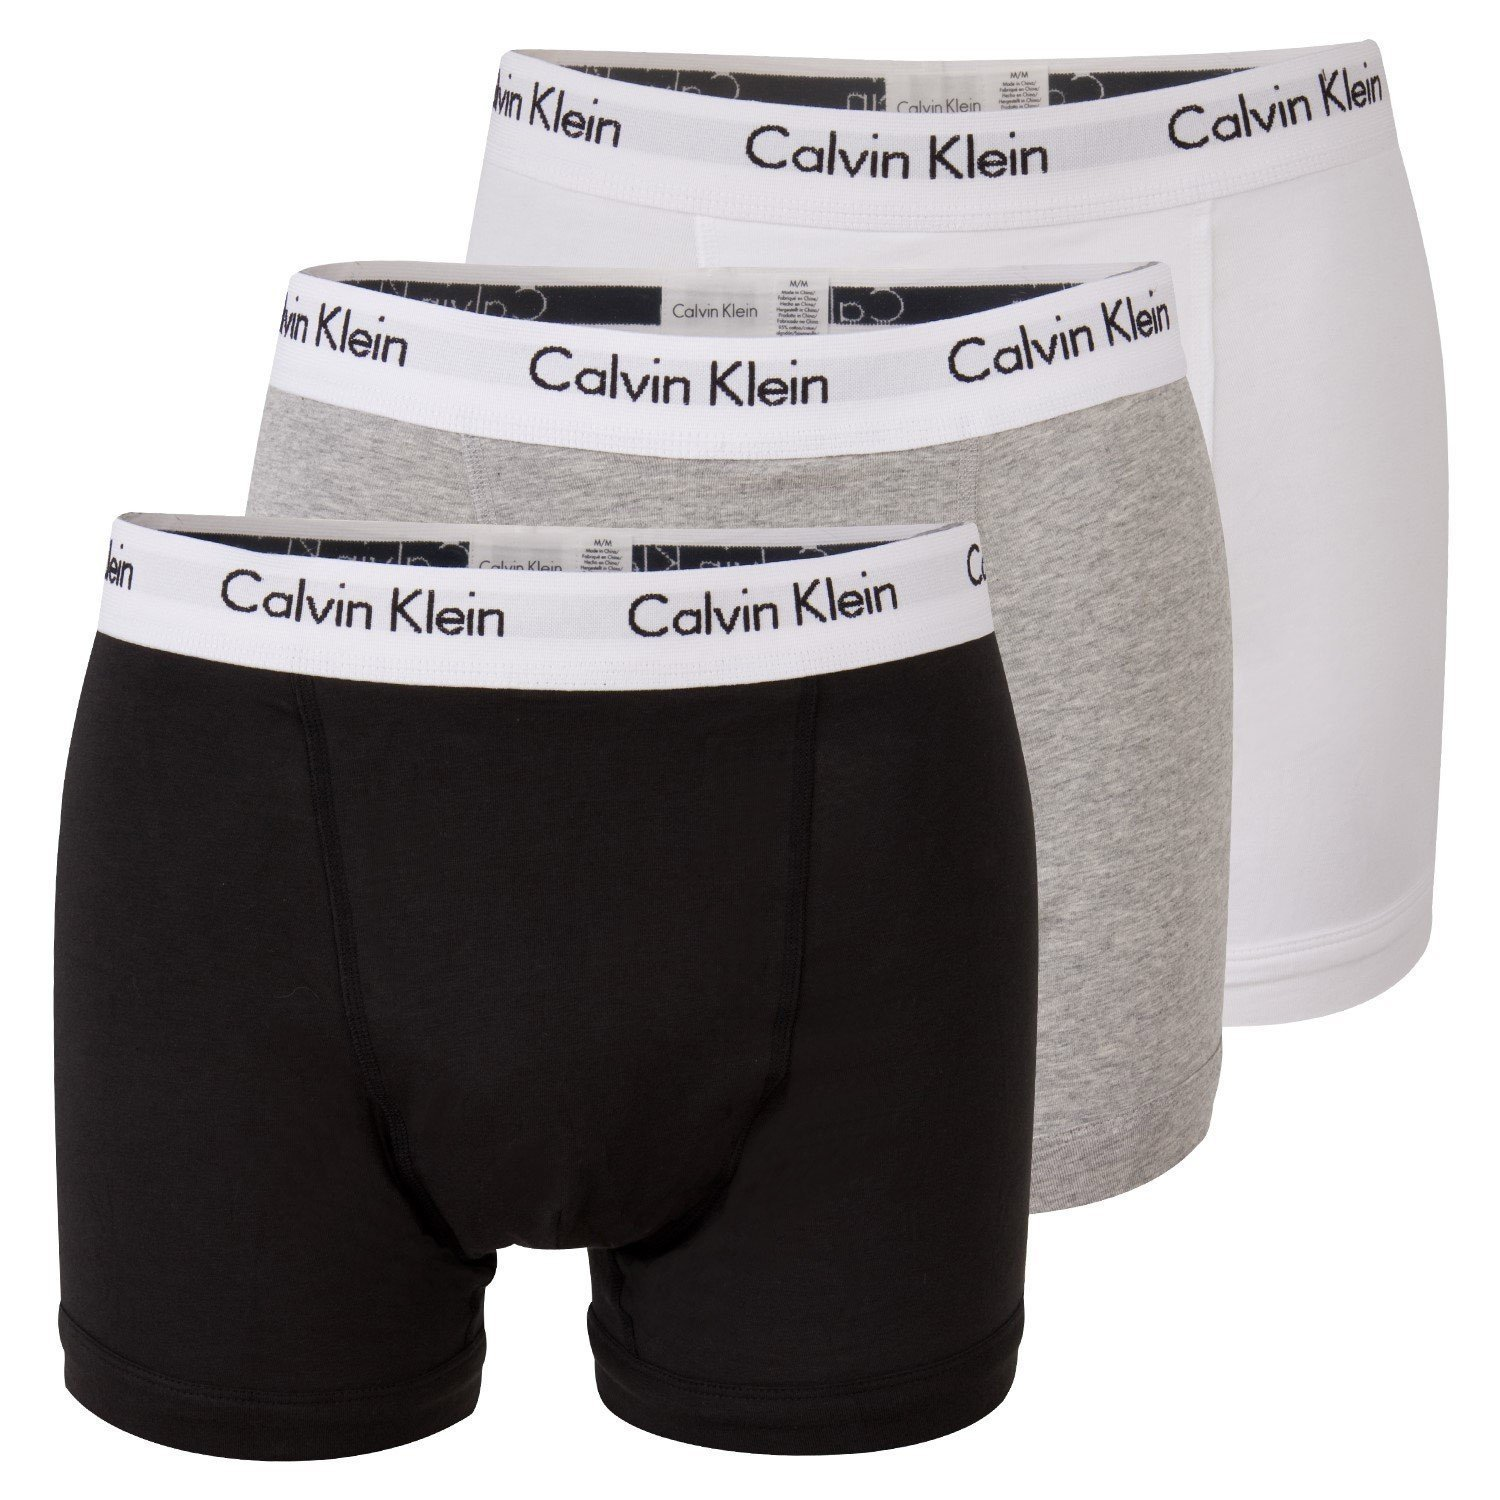 22 99 original calvin klein boxershorts herren 3er pack. Black Bedroom Furniture Sets. Home Design Ideas